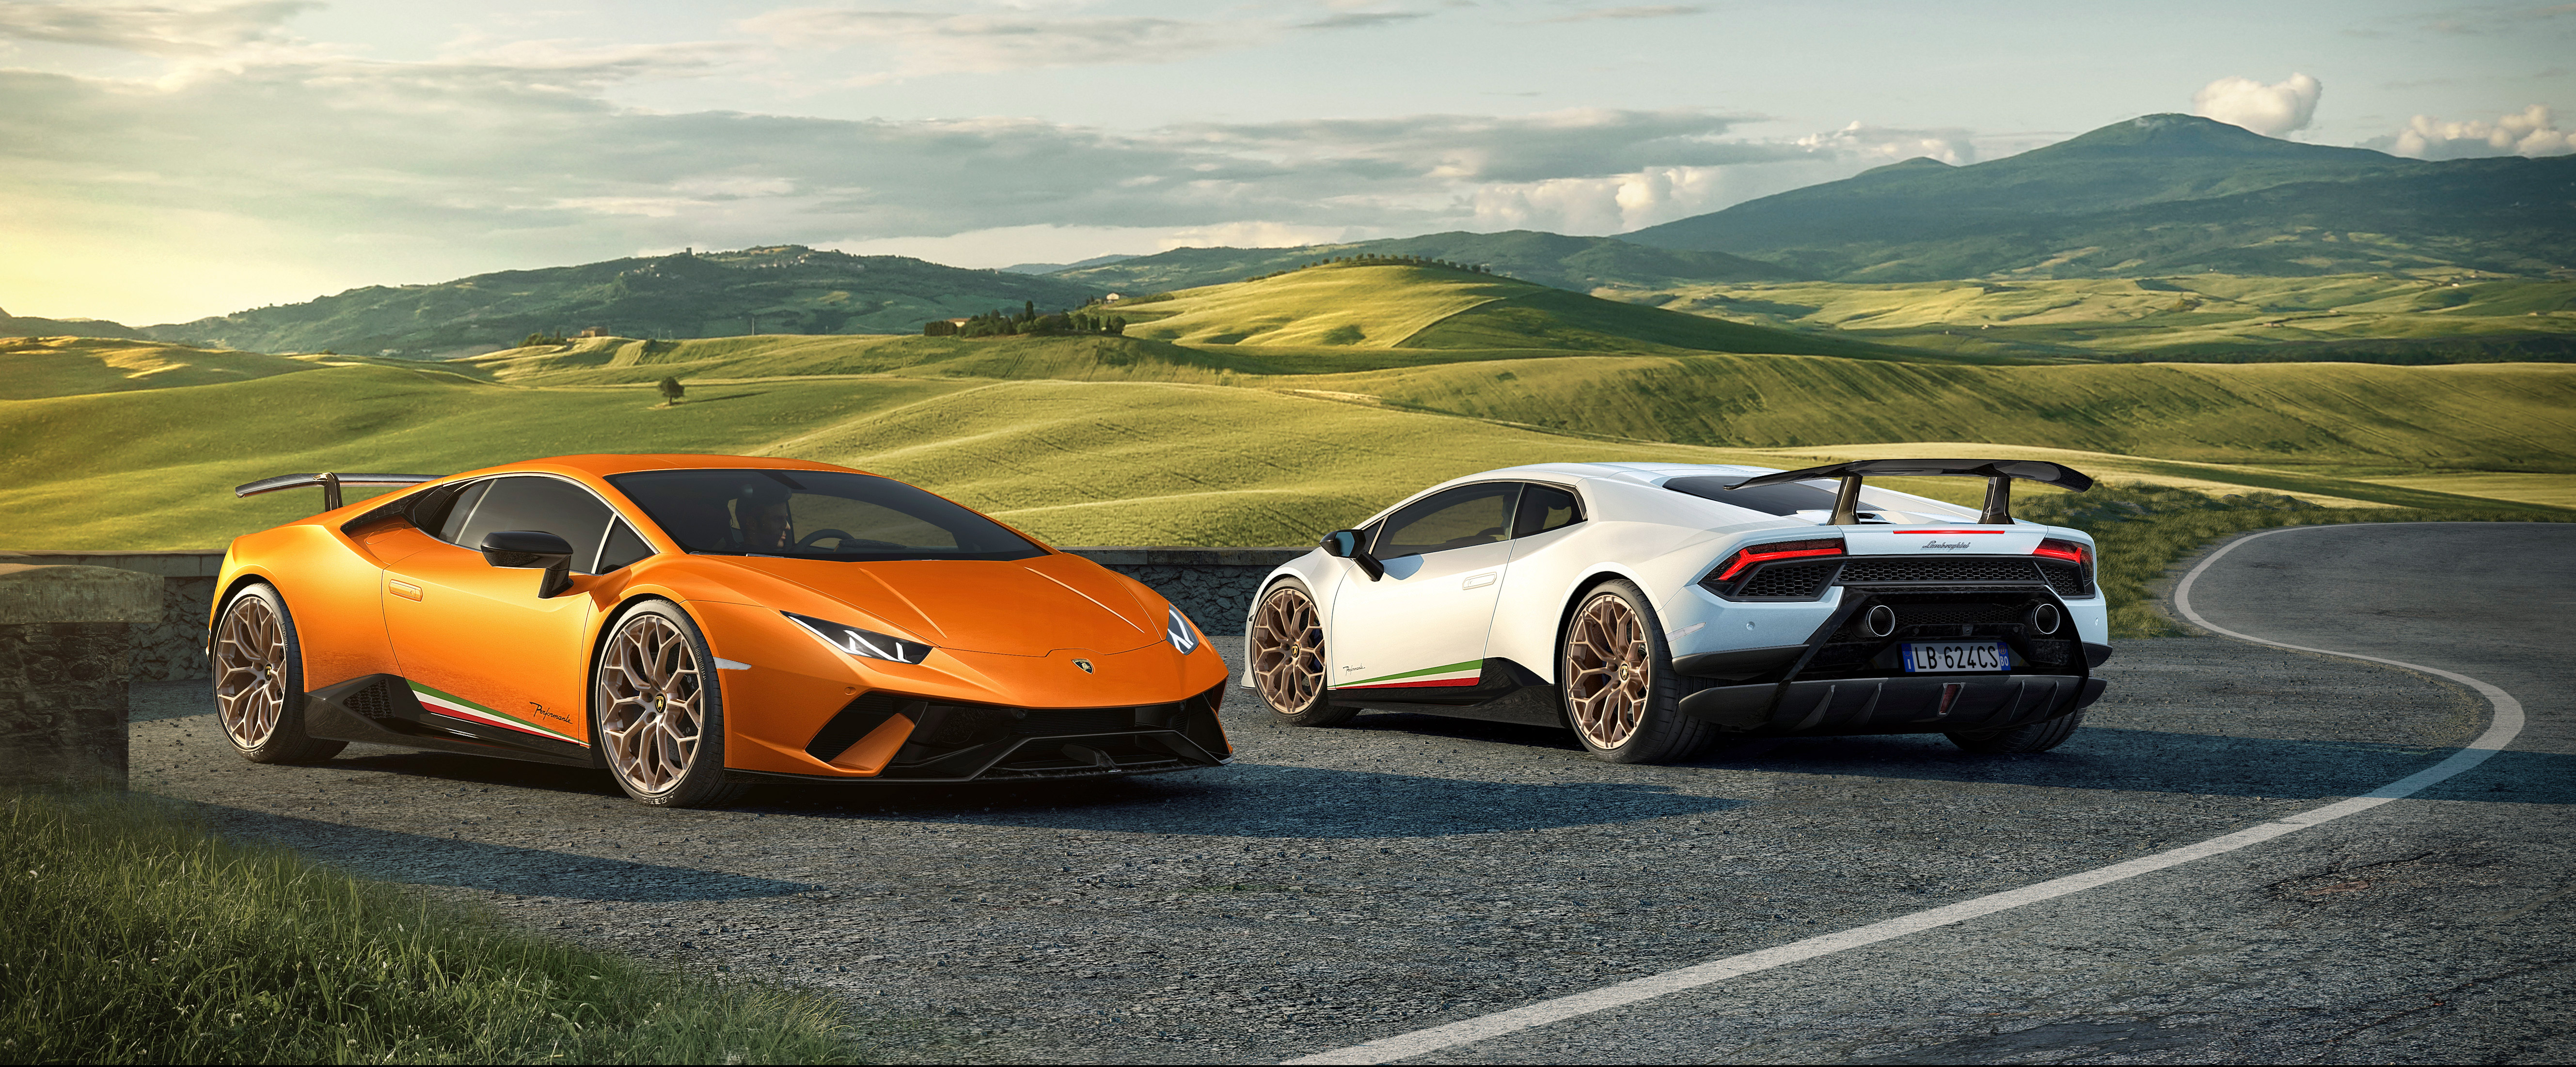 2017 Lamborghini Huracan Performante 5k, HD Cars, 4k